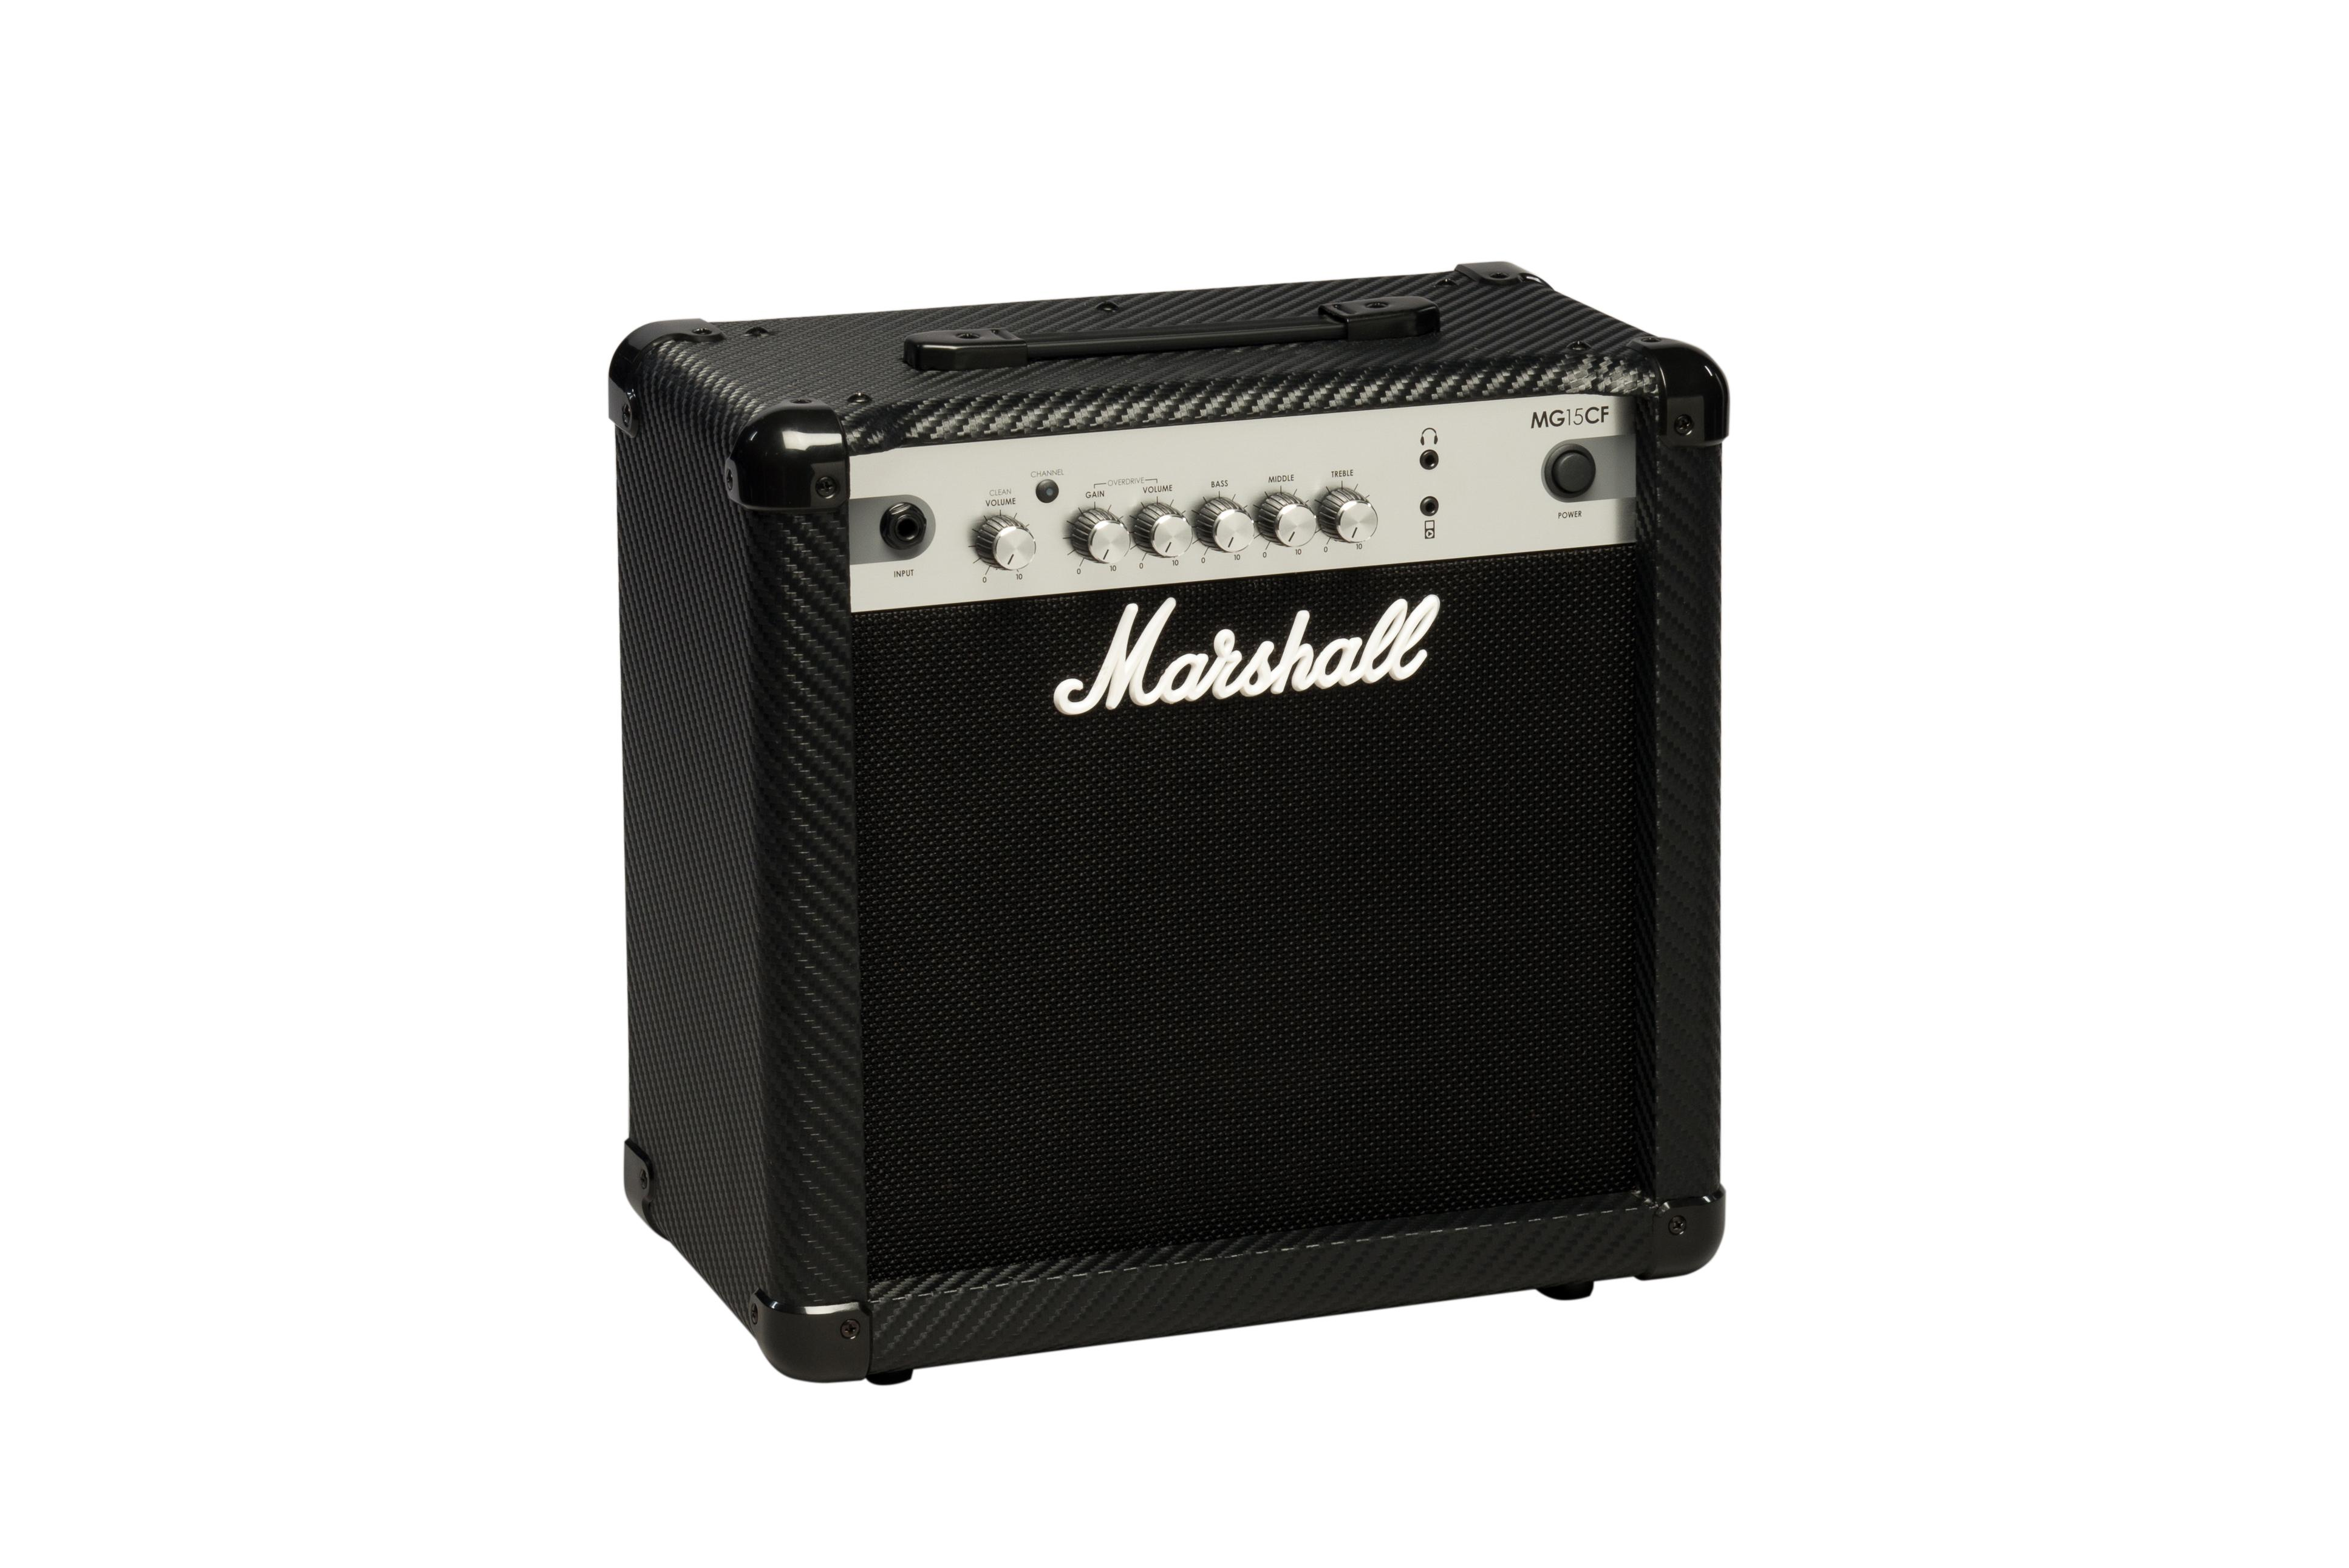 marshall mg15cf mg series 15 watt guitar combo amp musical instruments. Black Bedroom Furniture Sets. Home Design Ideas